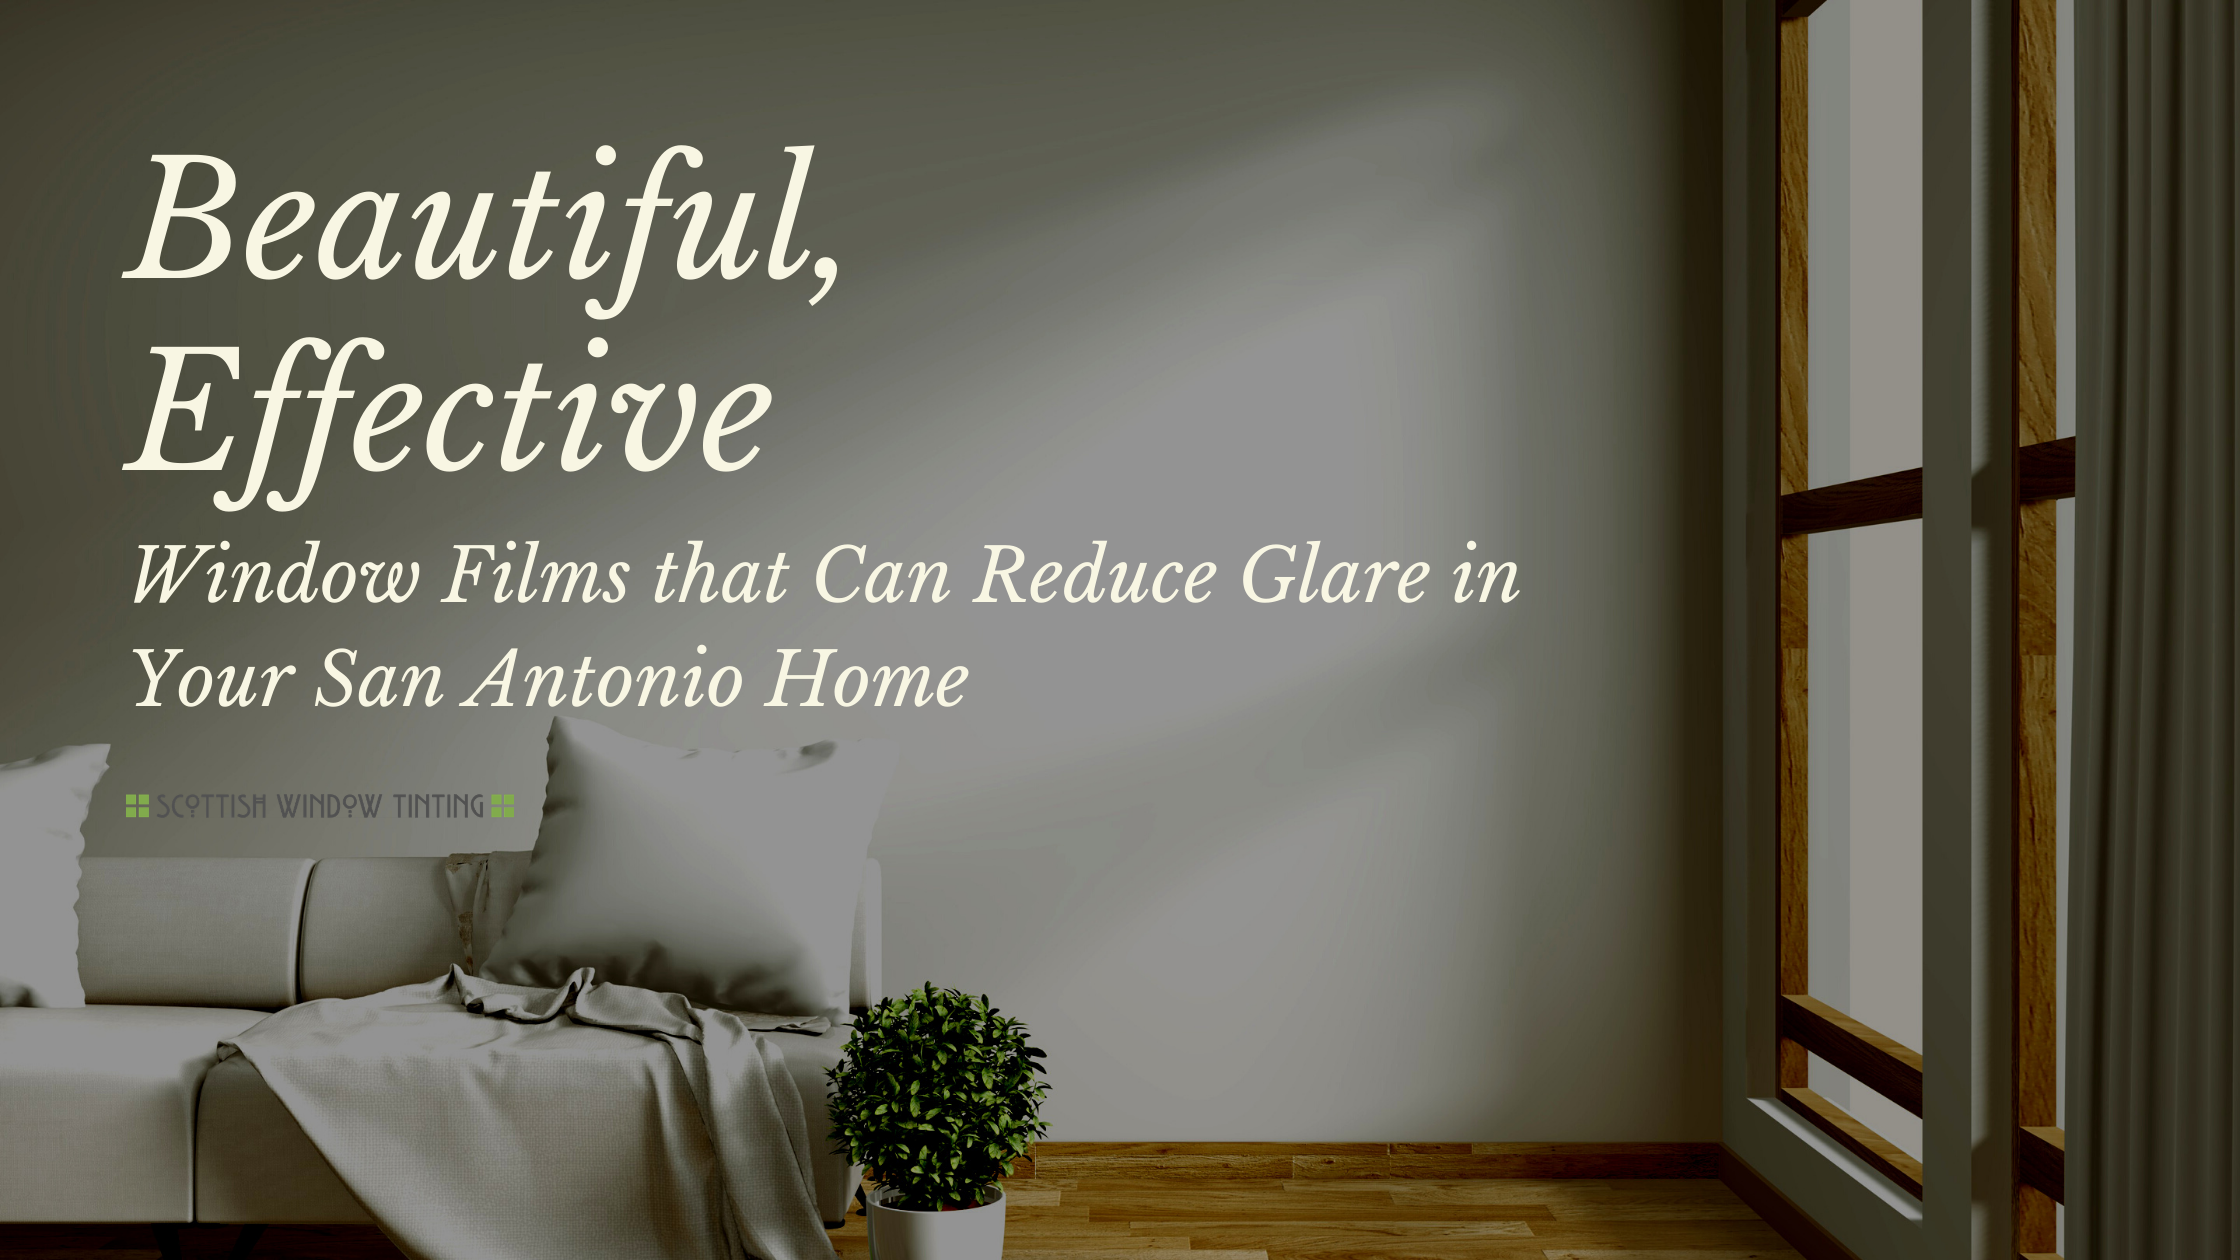 Beautiful, Effective Window Films that Can Reduce Glare in Your San Antonio Home